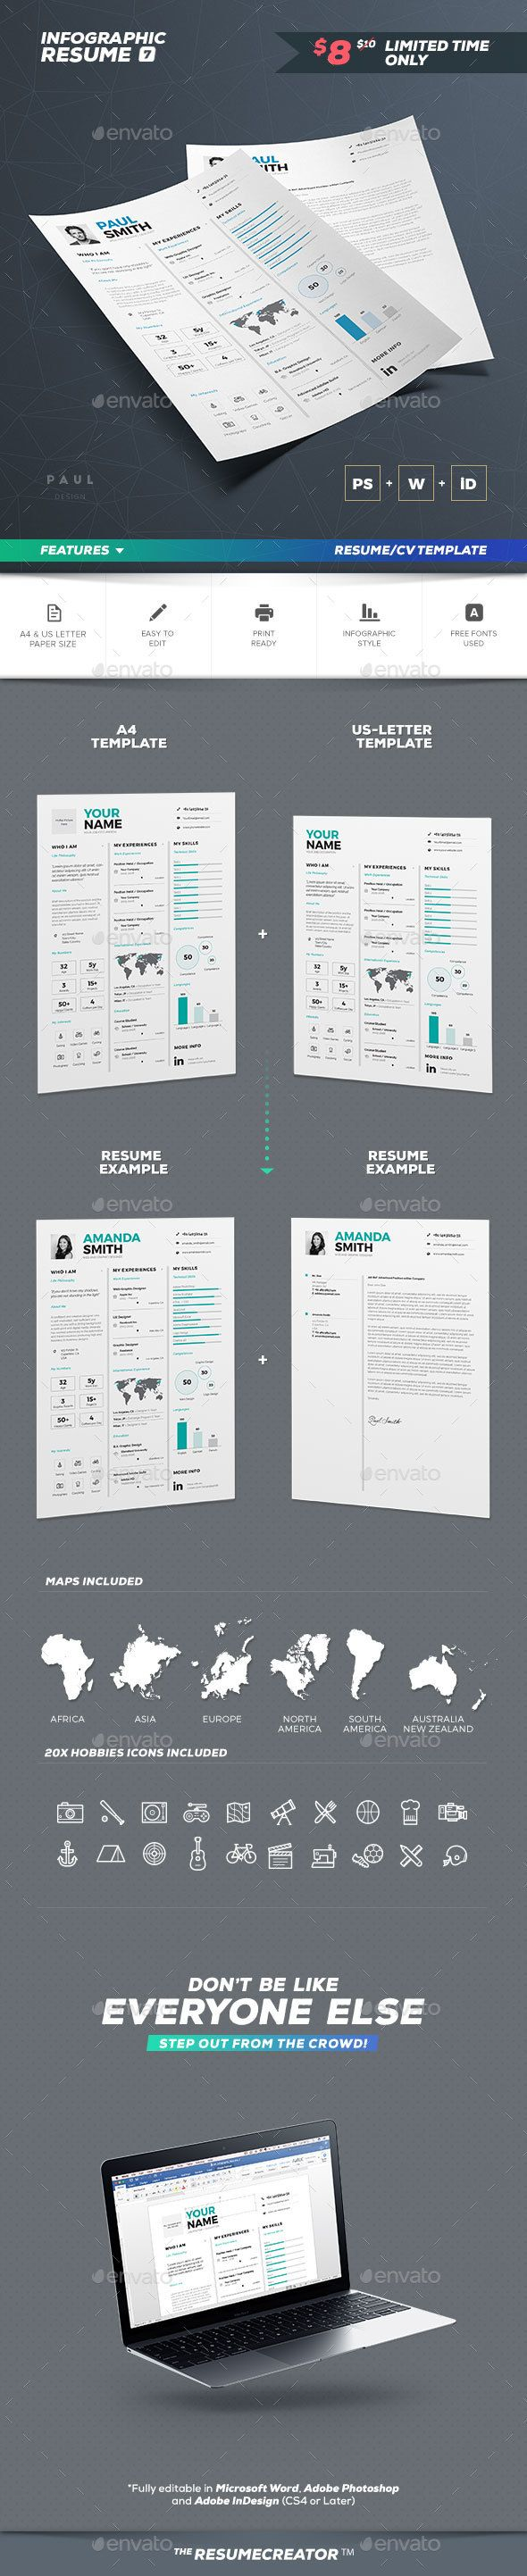 1552 best Resume Design images on Pinterest | Resume, Curriculum and ...